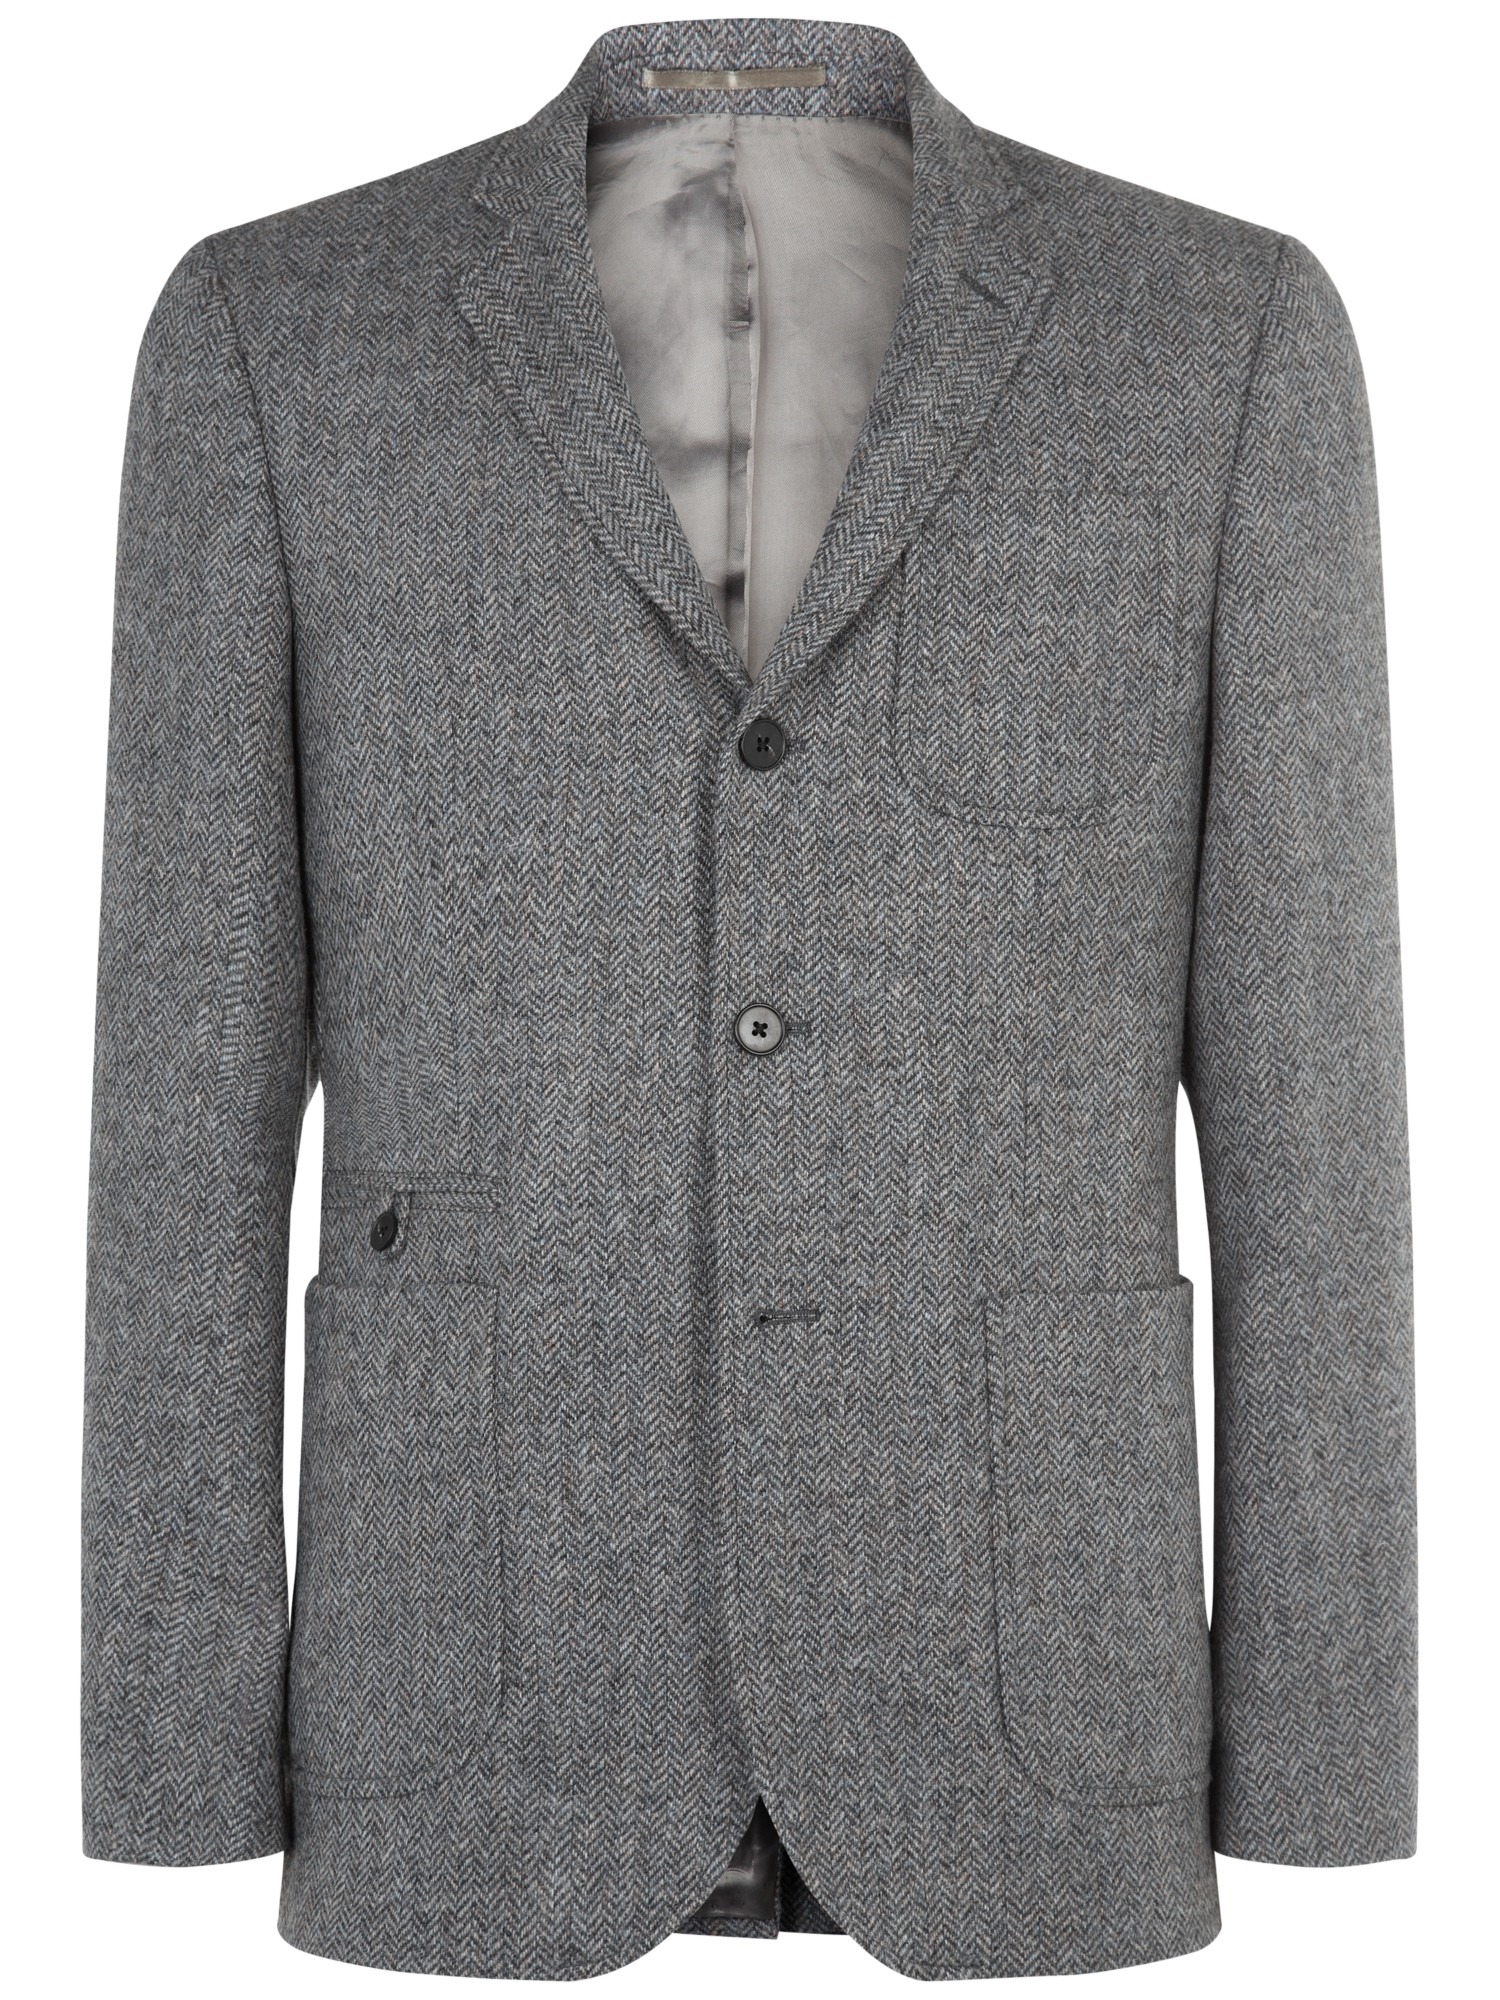 Single-breasted herringbone blazer with two-button closure featuring Ben Sherman Men's Slim Fit Cann Two Button Washed Cotton Herringbone Blazer with Insert. by Ben Sherman. $ $ 99 Prime. FREE Shipping on eligible orders. Some sizes/colors are Prime eligible. 5 out of 5 stars 6.